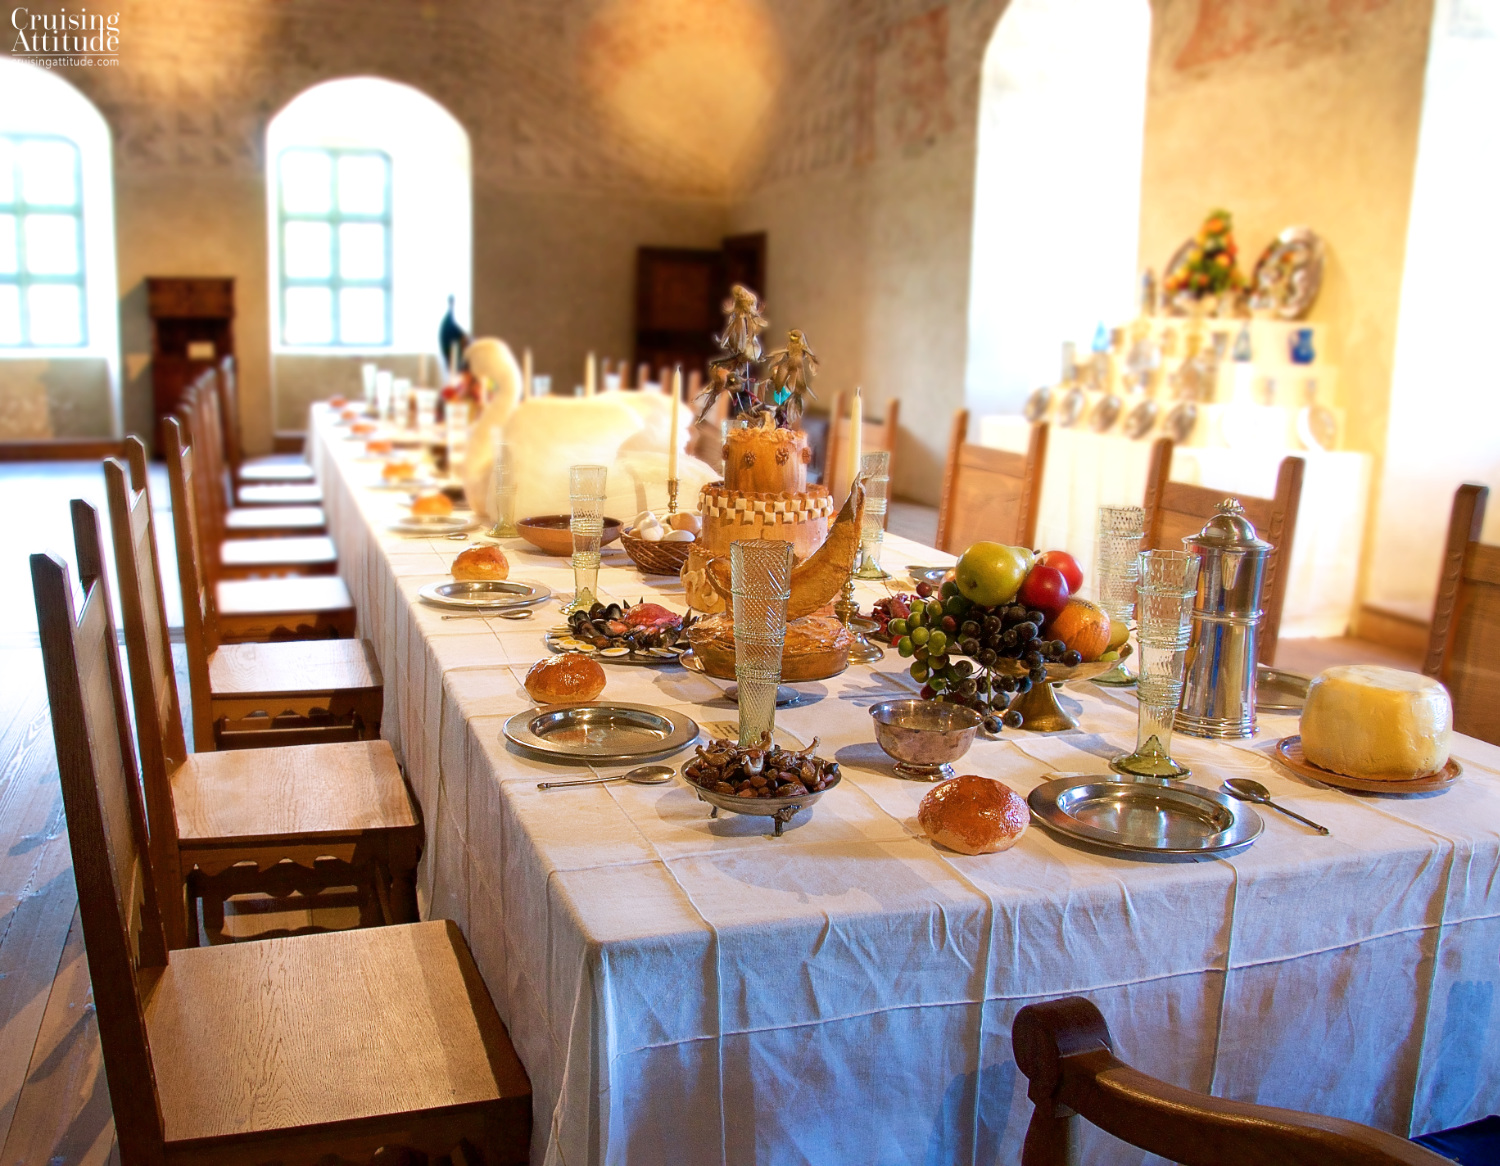 Banquet hall at Kalmar Castle | Cruising Attitude Sailing Blog - Discovery 55